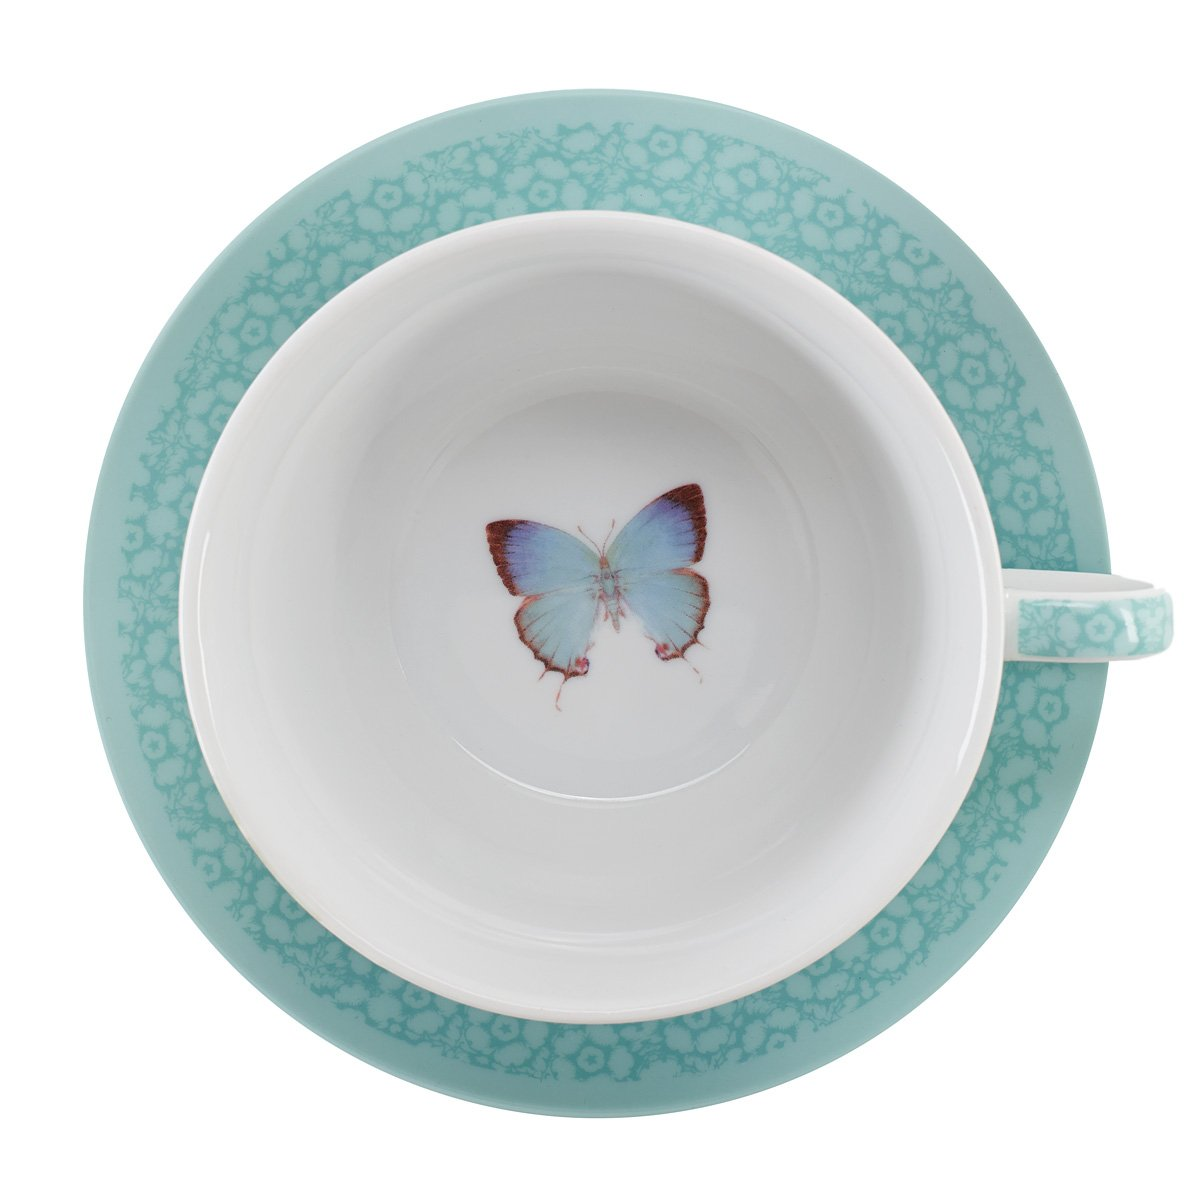 Botanic Butterfly Blessings ''Grace'' Tea-for-One Set by Christian Art Gifts (Image #5)